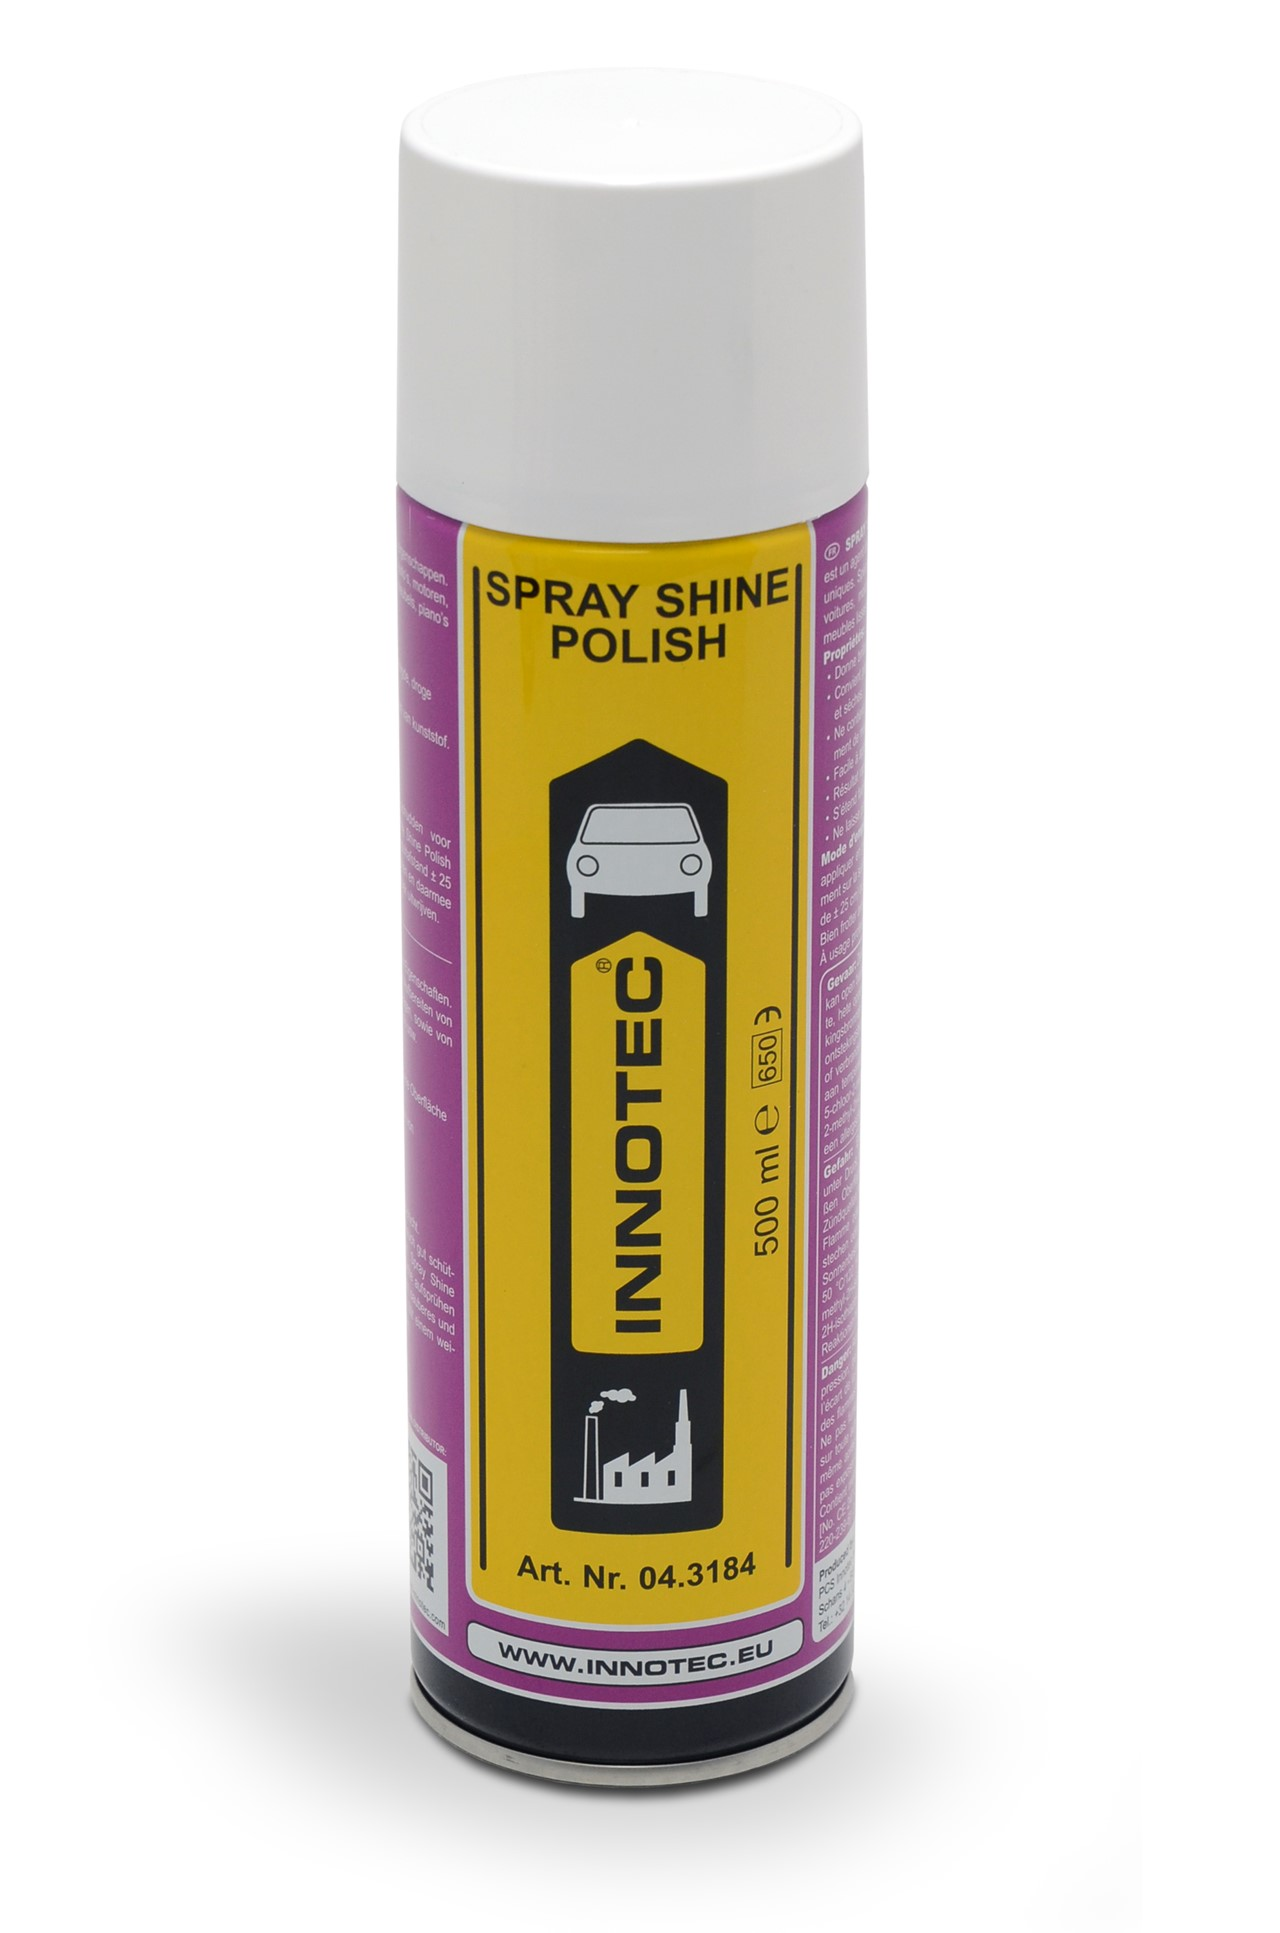 Spray Shine Polish.jpg